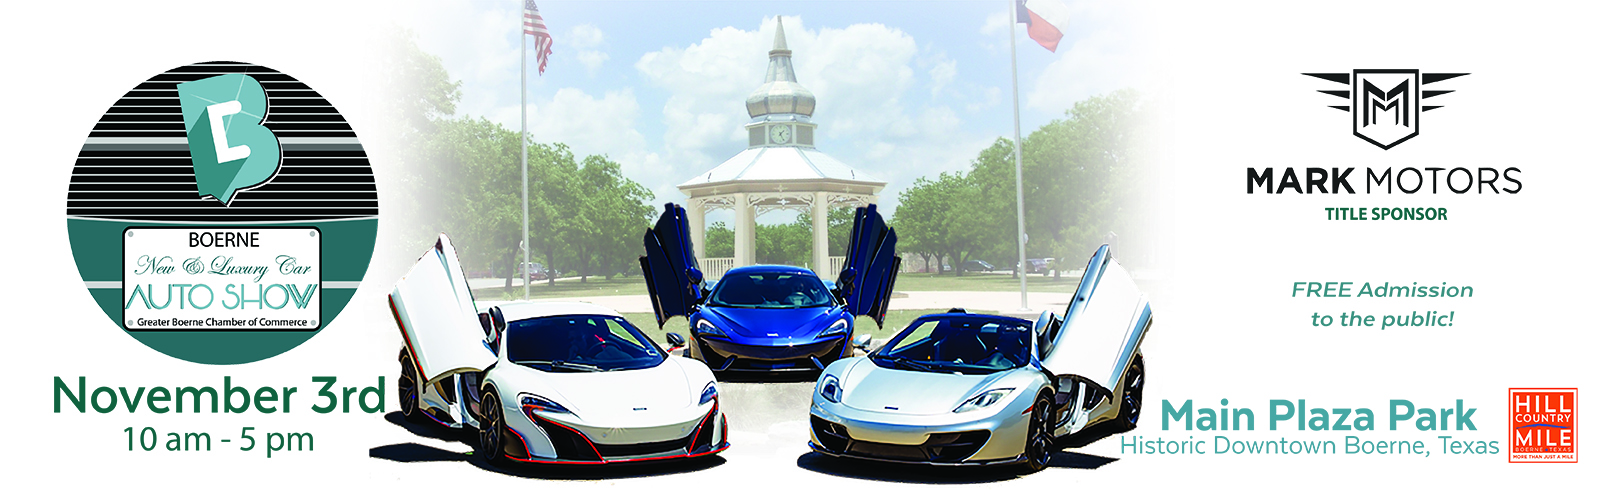 Boerne New Luxury Car Auto Show The Greater Boerne Chamber Of - Luxury car show 2018